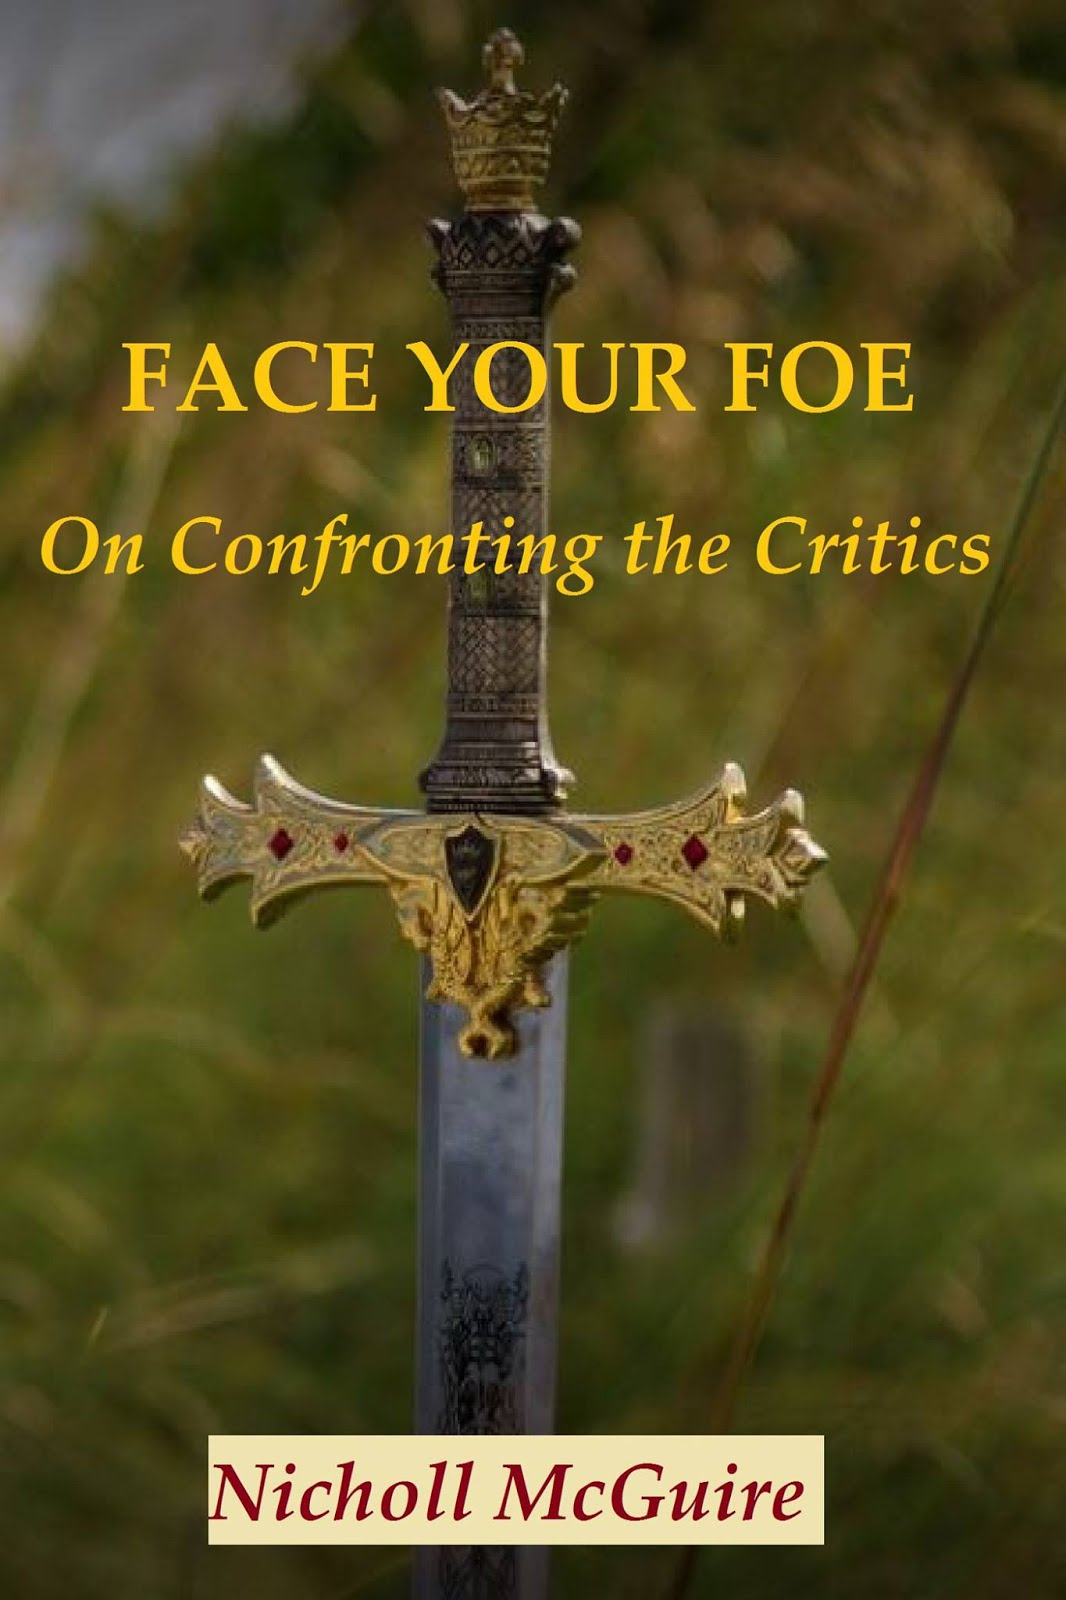 Face Your Foe - The Book